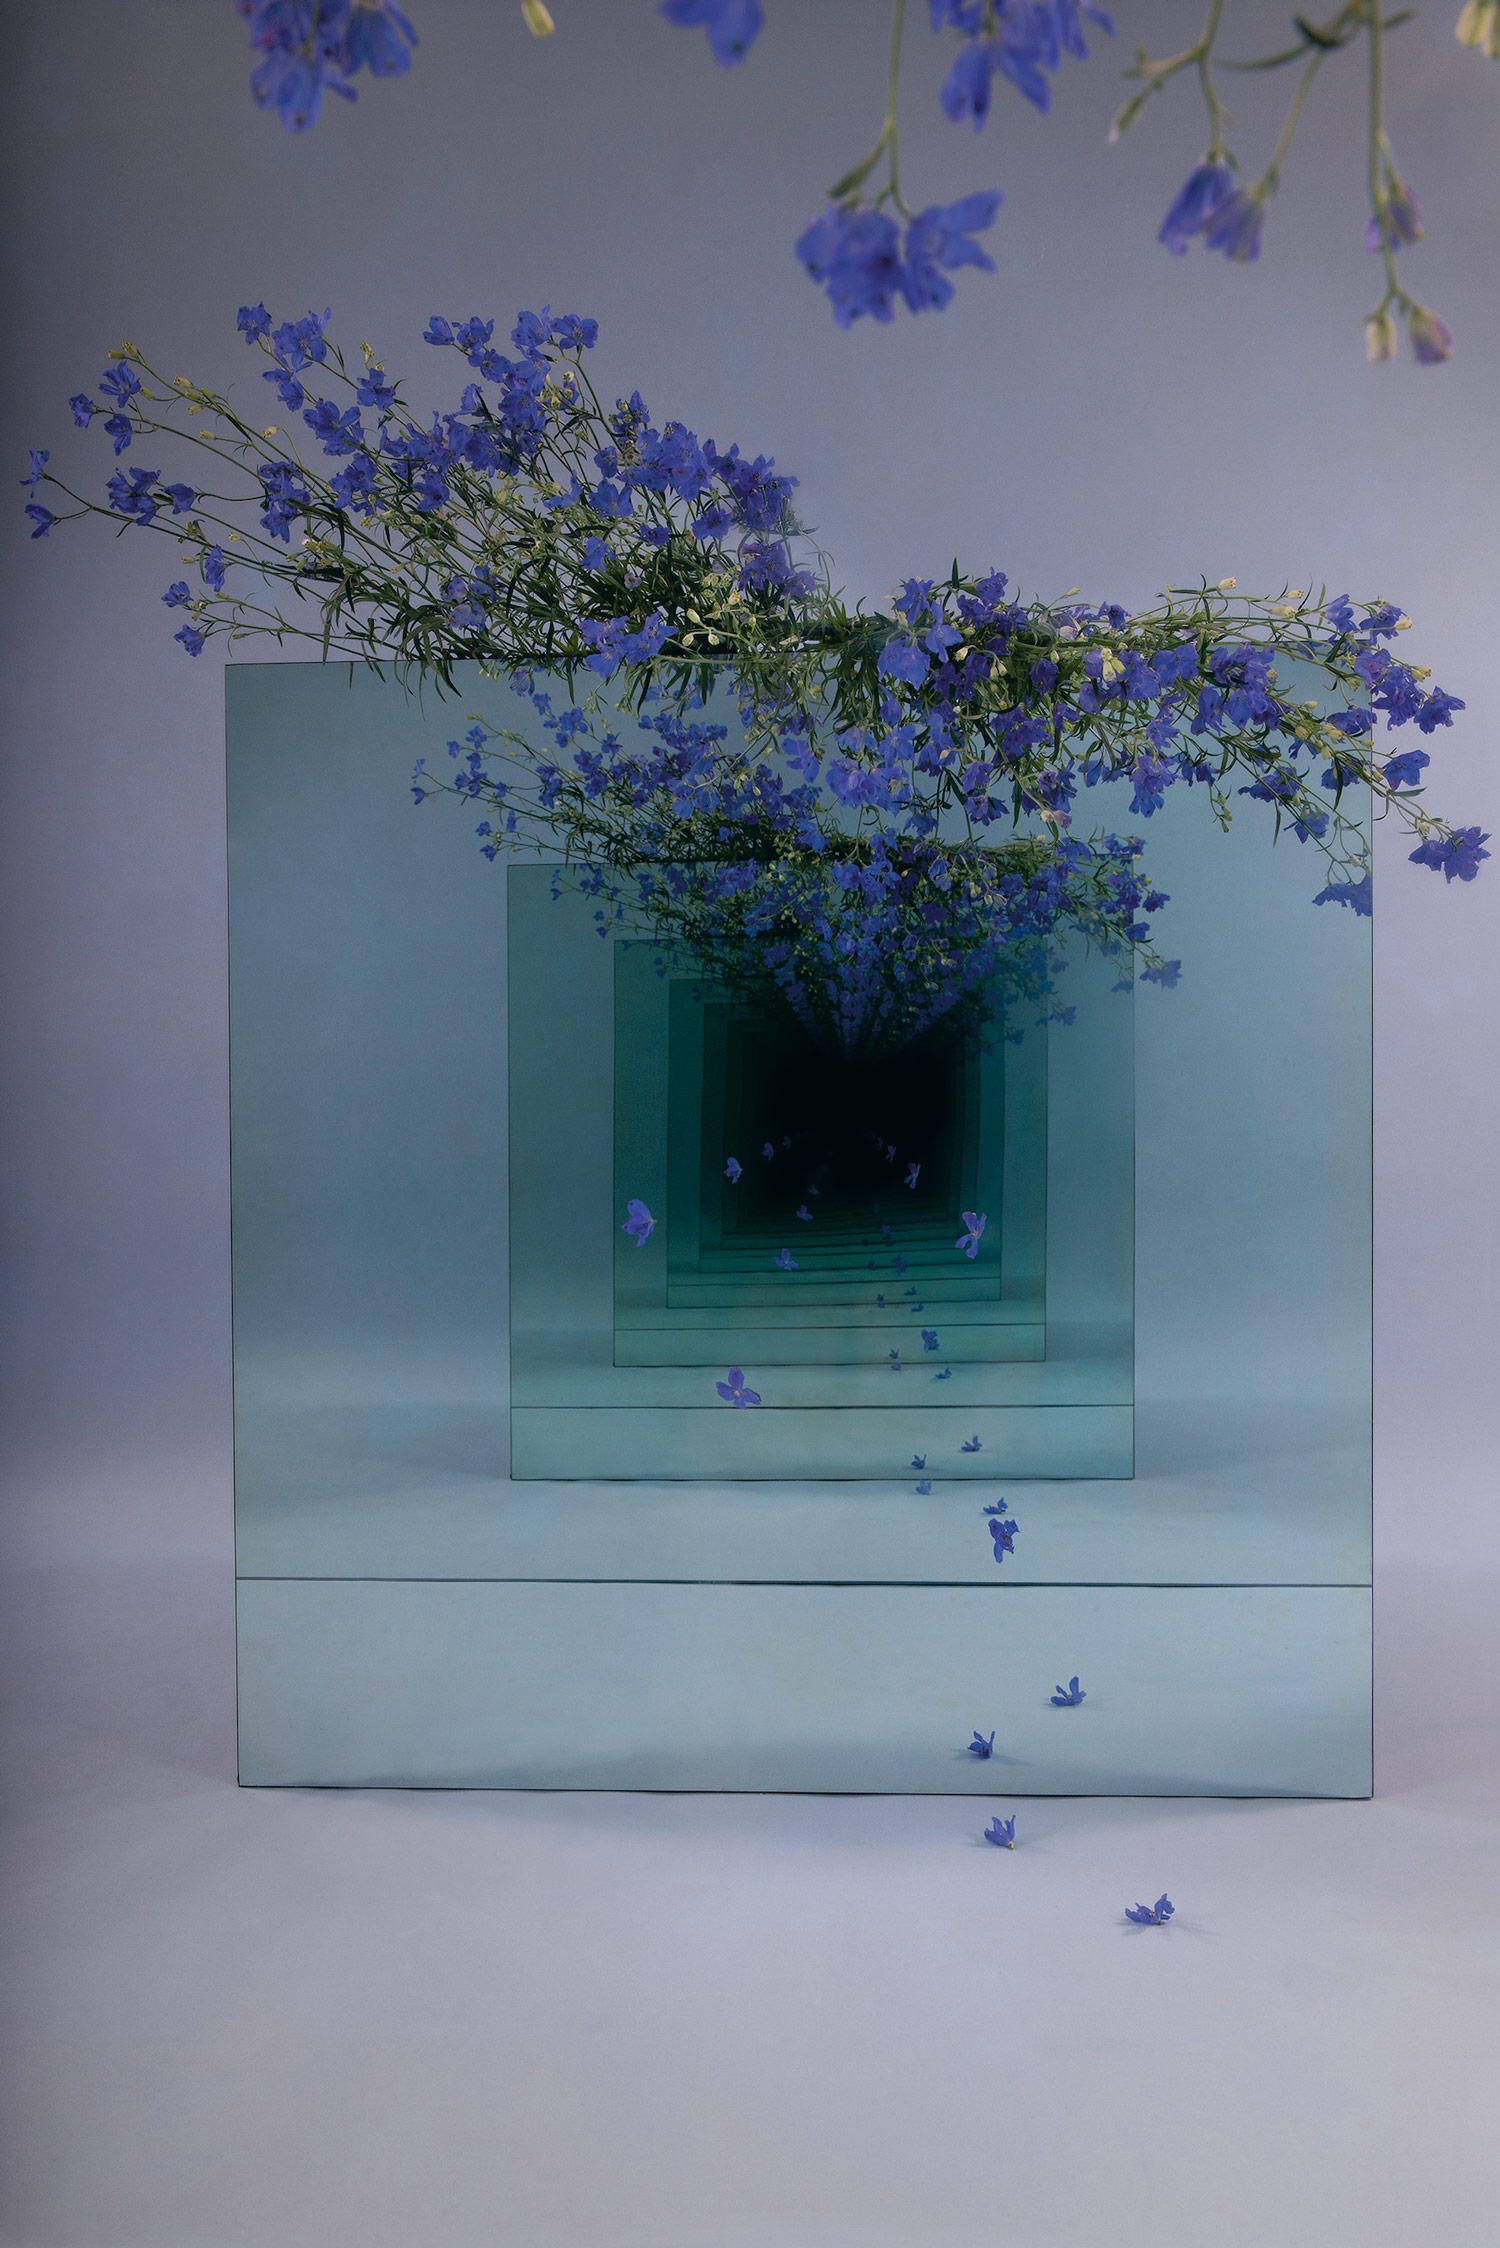 Mirrored Installations by Sarah Meyohas Create Infinite Tunnels Strewn With Dangling Flowers | Colossal